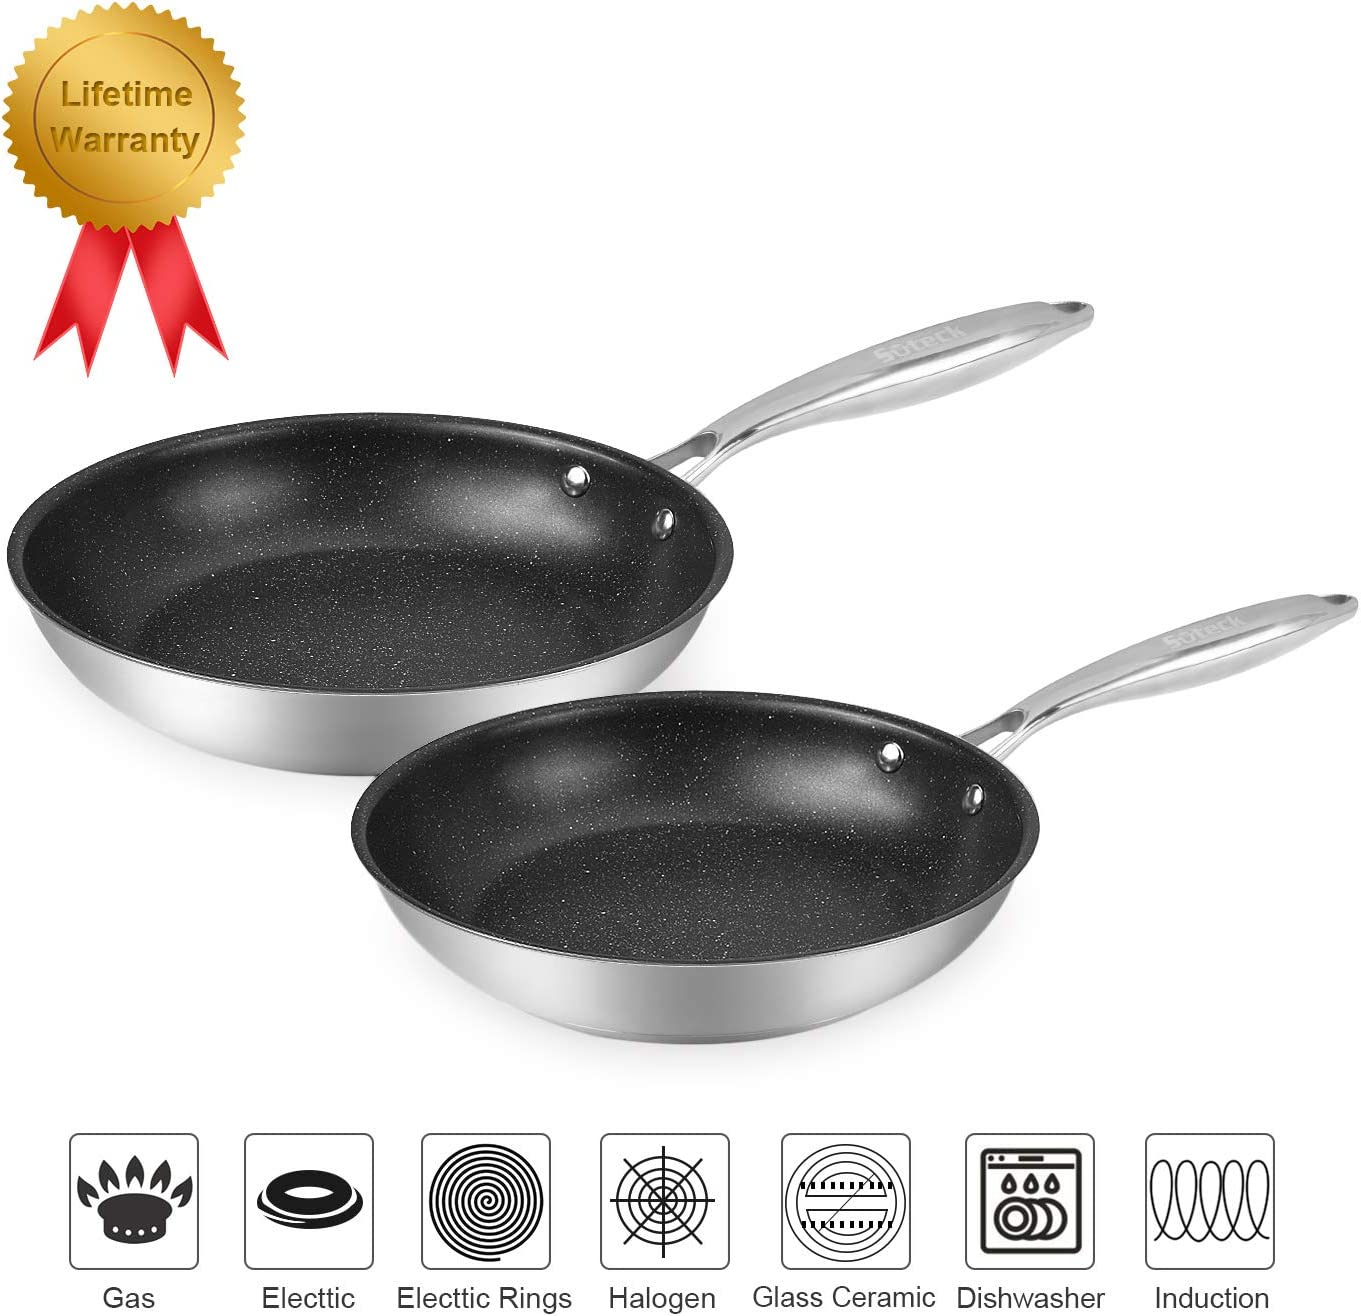 "Suteck Nonstick Deep Fry Pan Set of 2 | 8"" & 10"" Opening Skillet Stainless Steel Frying Pan, Oven & Dishwasher Safe Classic Cooking Pan Cookware"